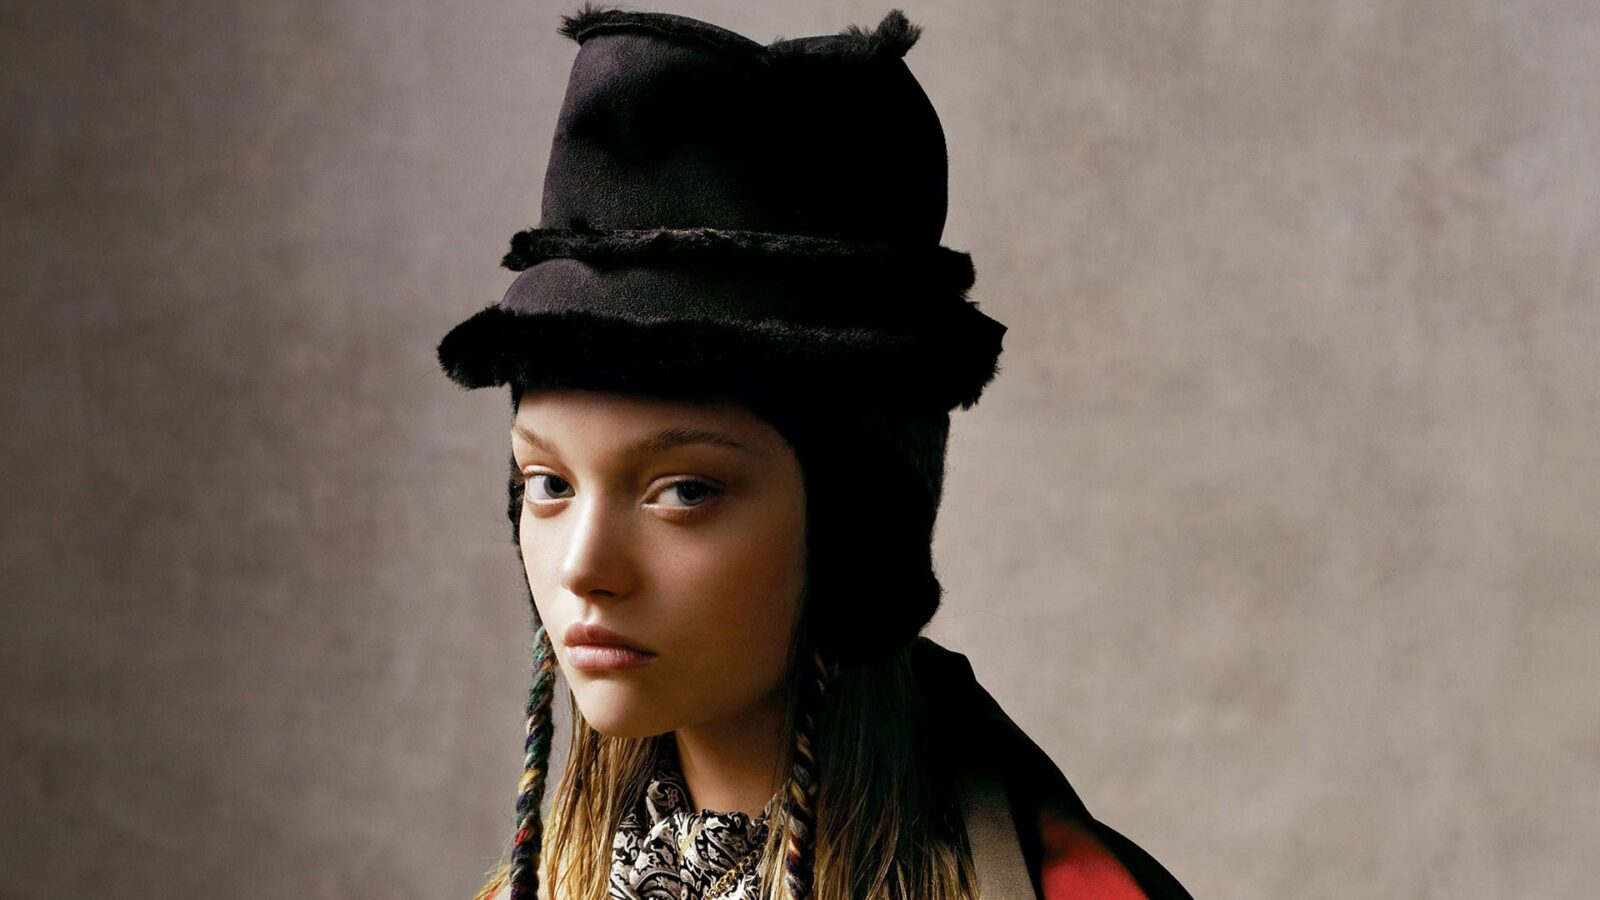 Wallpaper of Gemma Ward for iPad